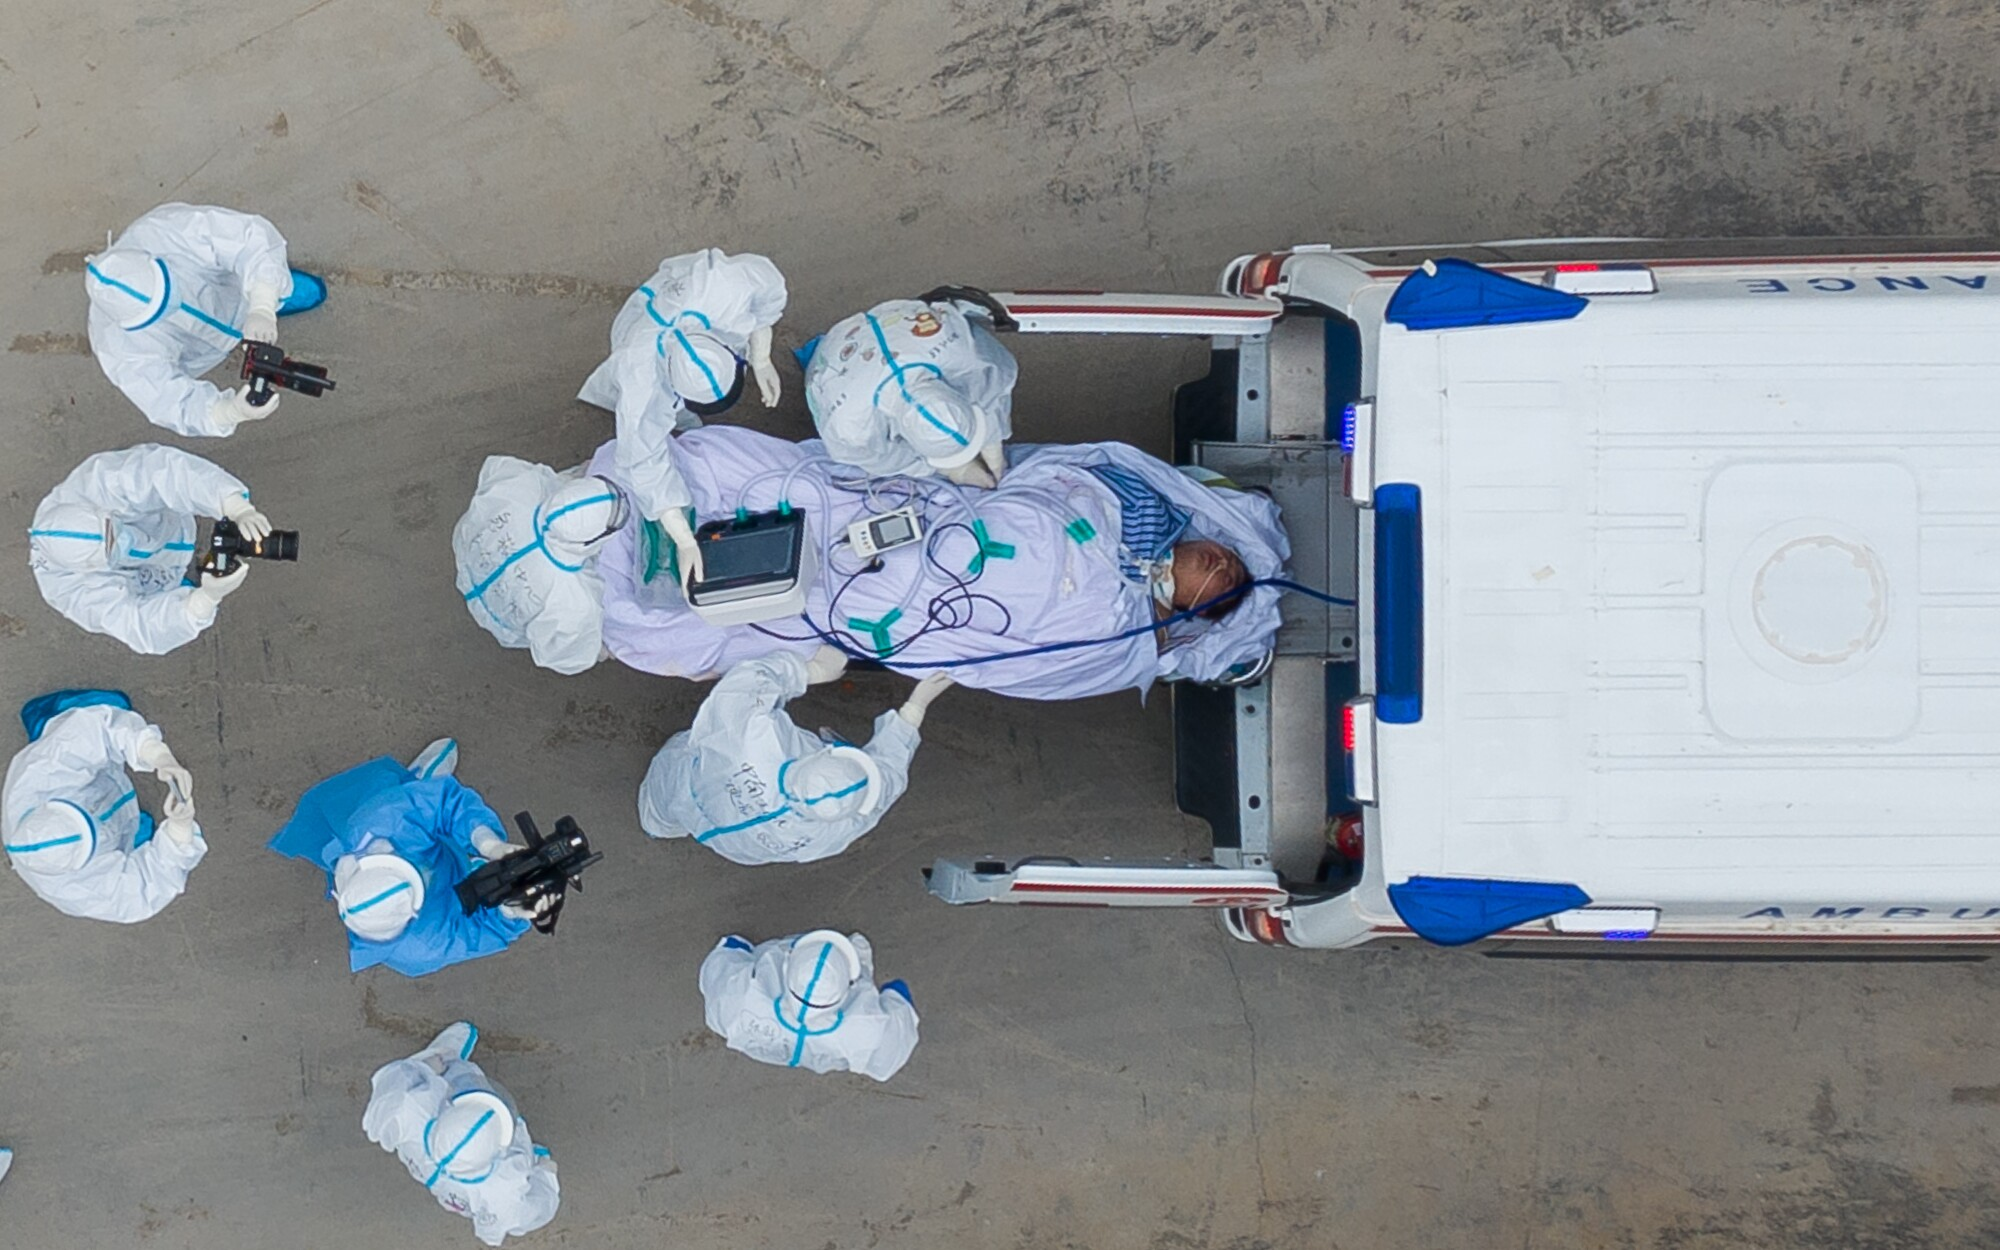 Ambulances carrying patients in Wuhan, China